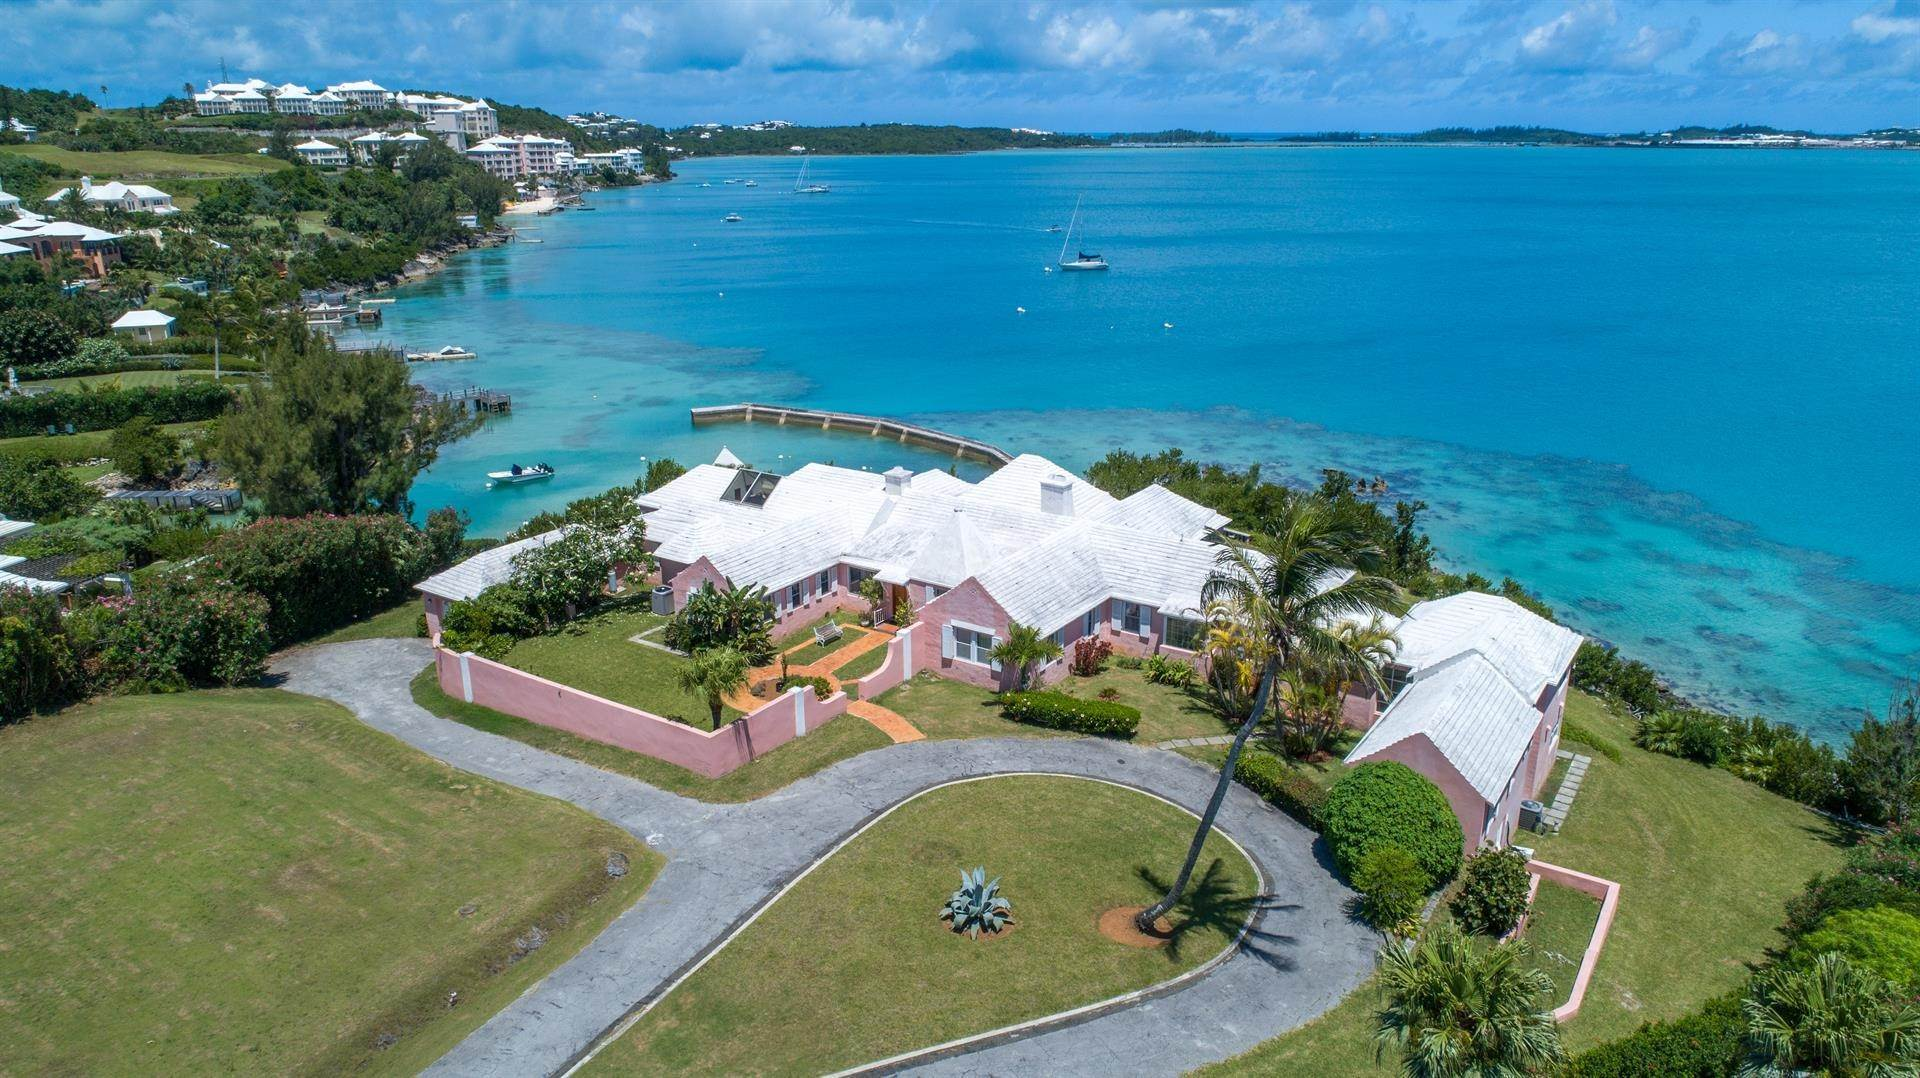 6. Propiedad con frente por un Venta en At Last in Tucker's Town At Last in Tucker's Town, ,Bermuda – Sinclair Realty